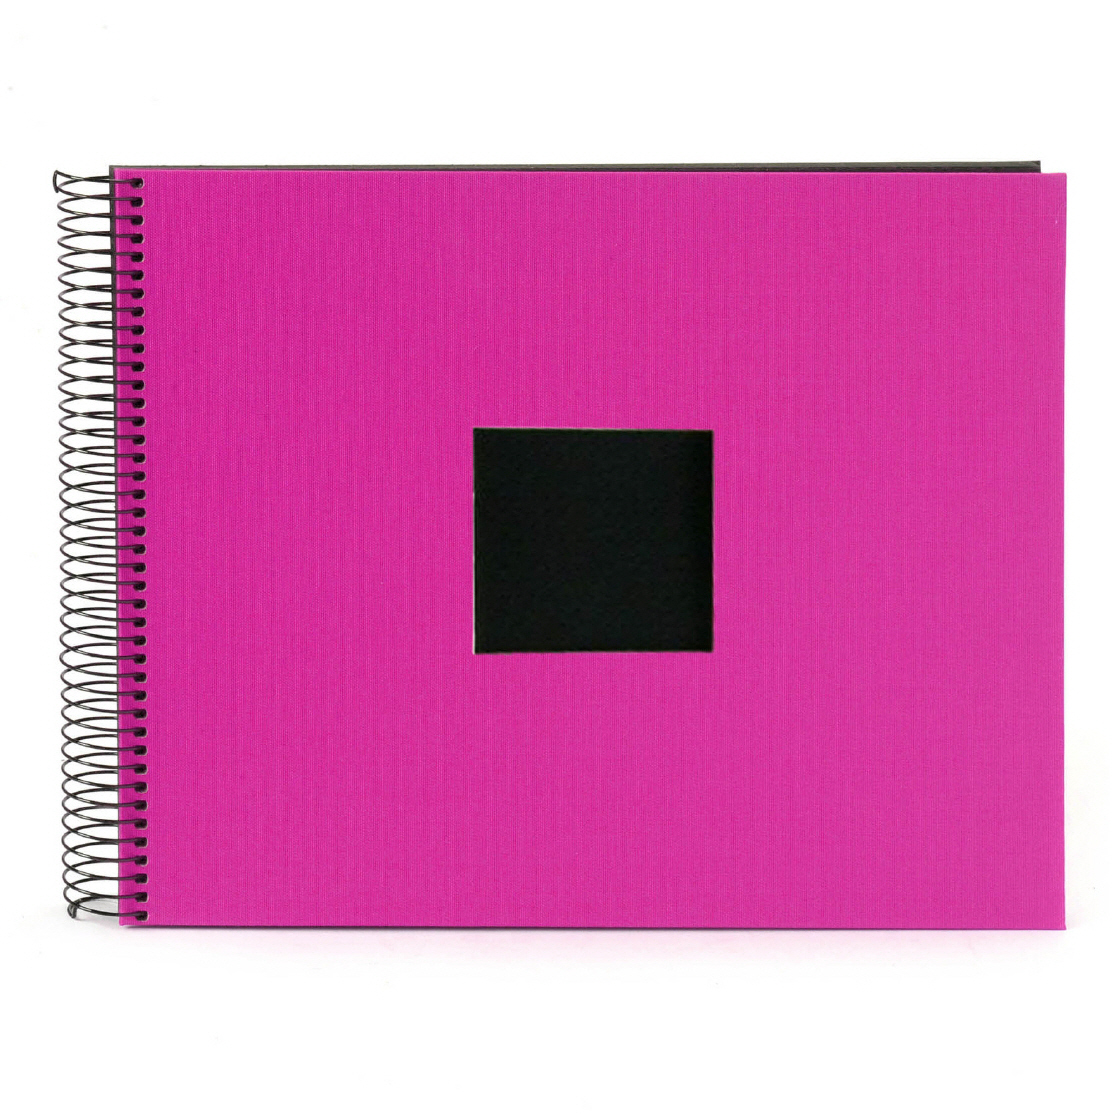 Goldbuch spiral album Bella Vista pink